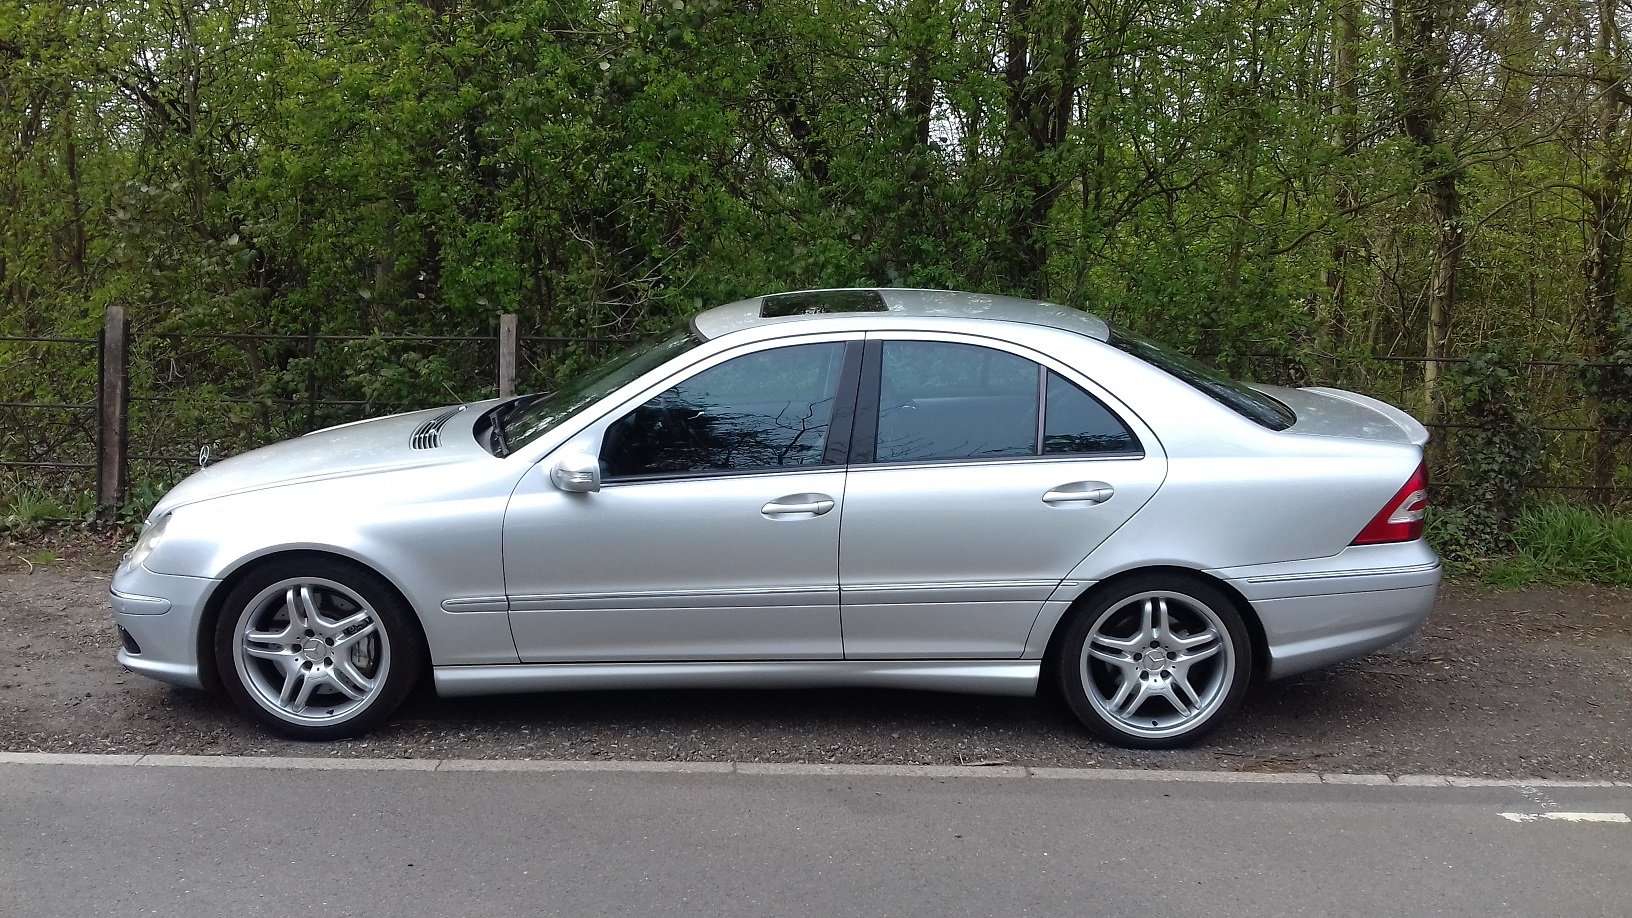 2006 Mercedes-Benz C55 AMG 4dr Full Spec For Sale (picture 3 of 5)